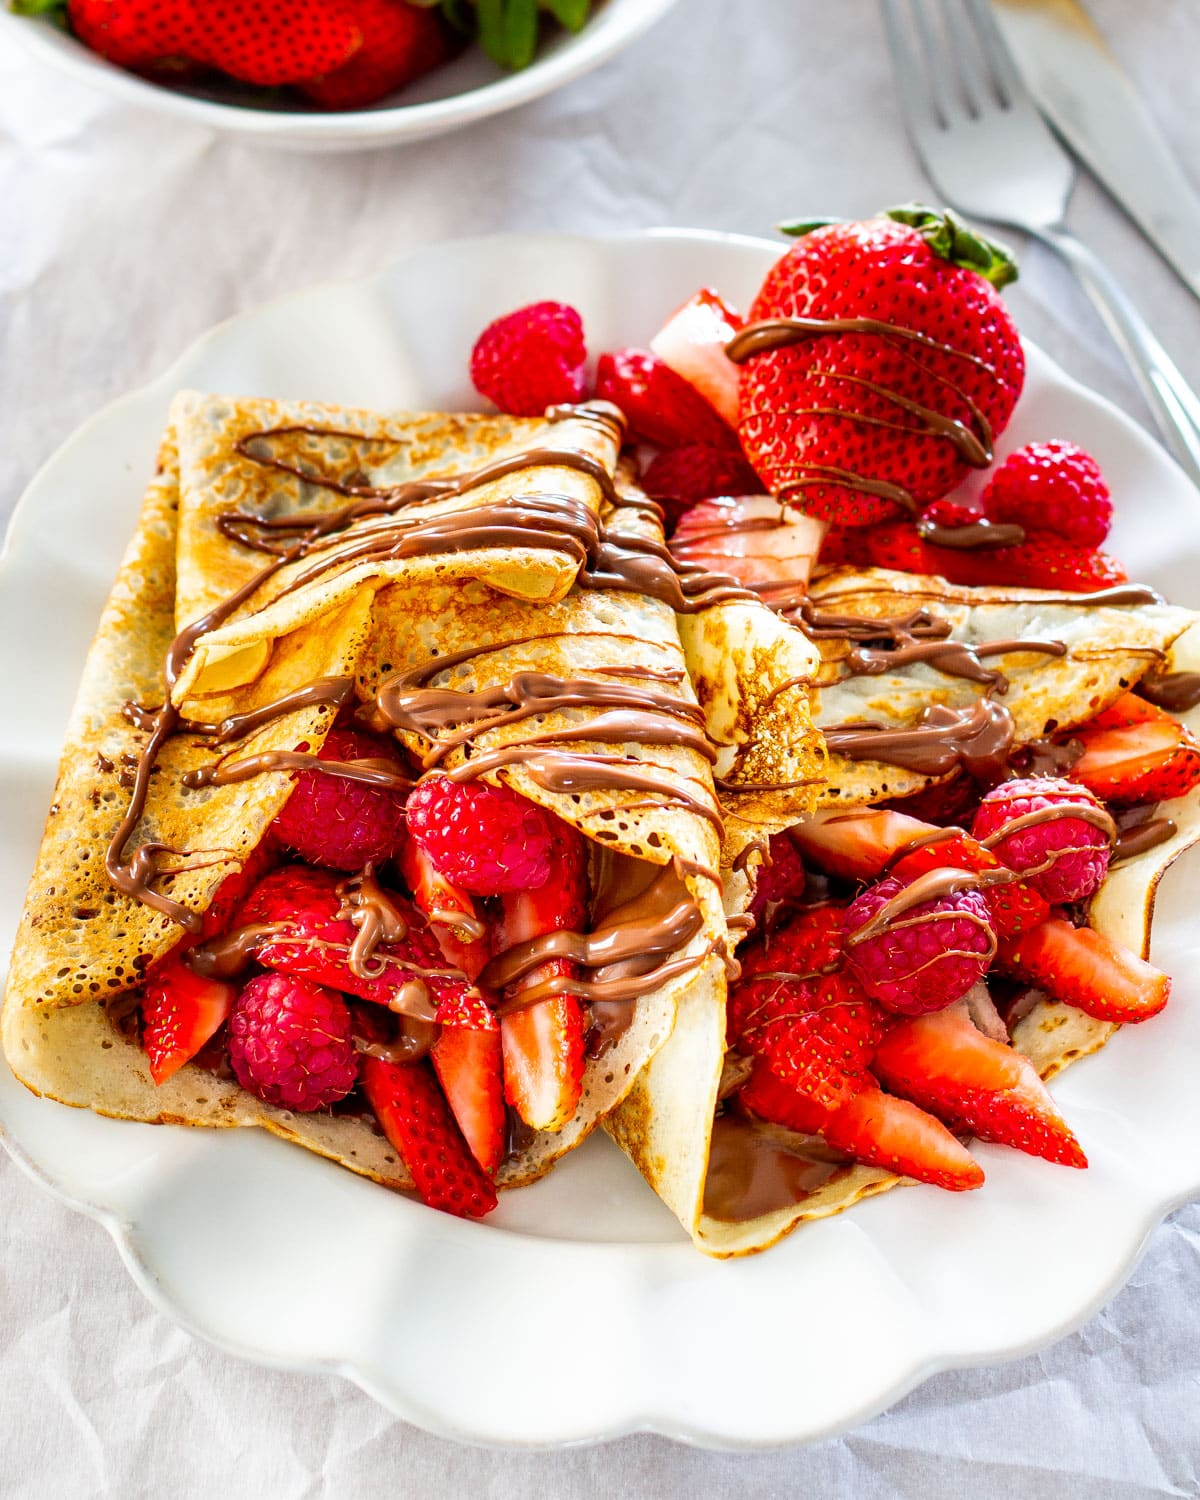 two homemade crepes stuffed with nutella and berries on a white plate